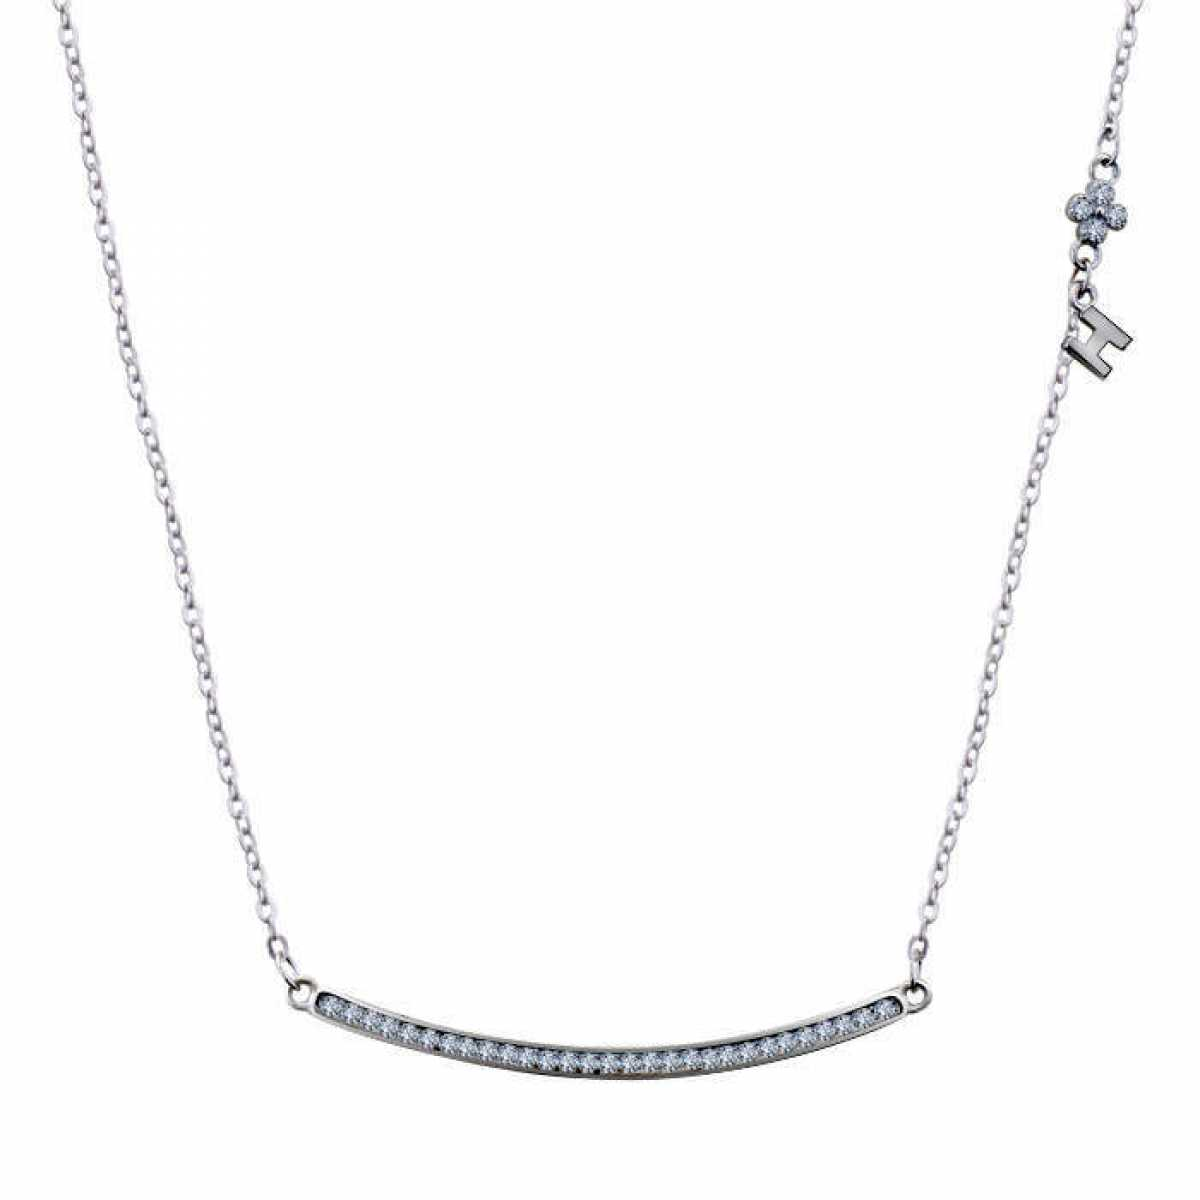 Delicate Simple Diamond Chain